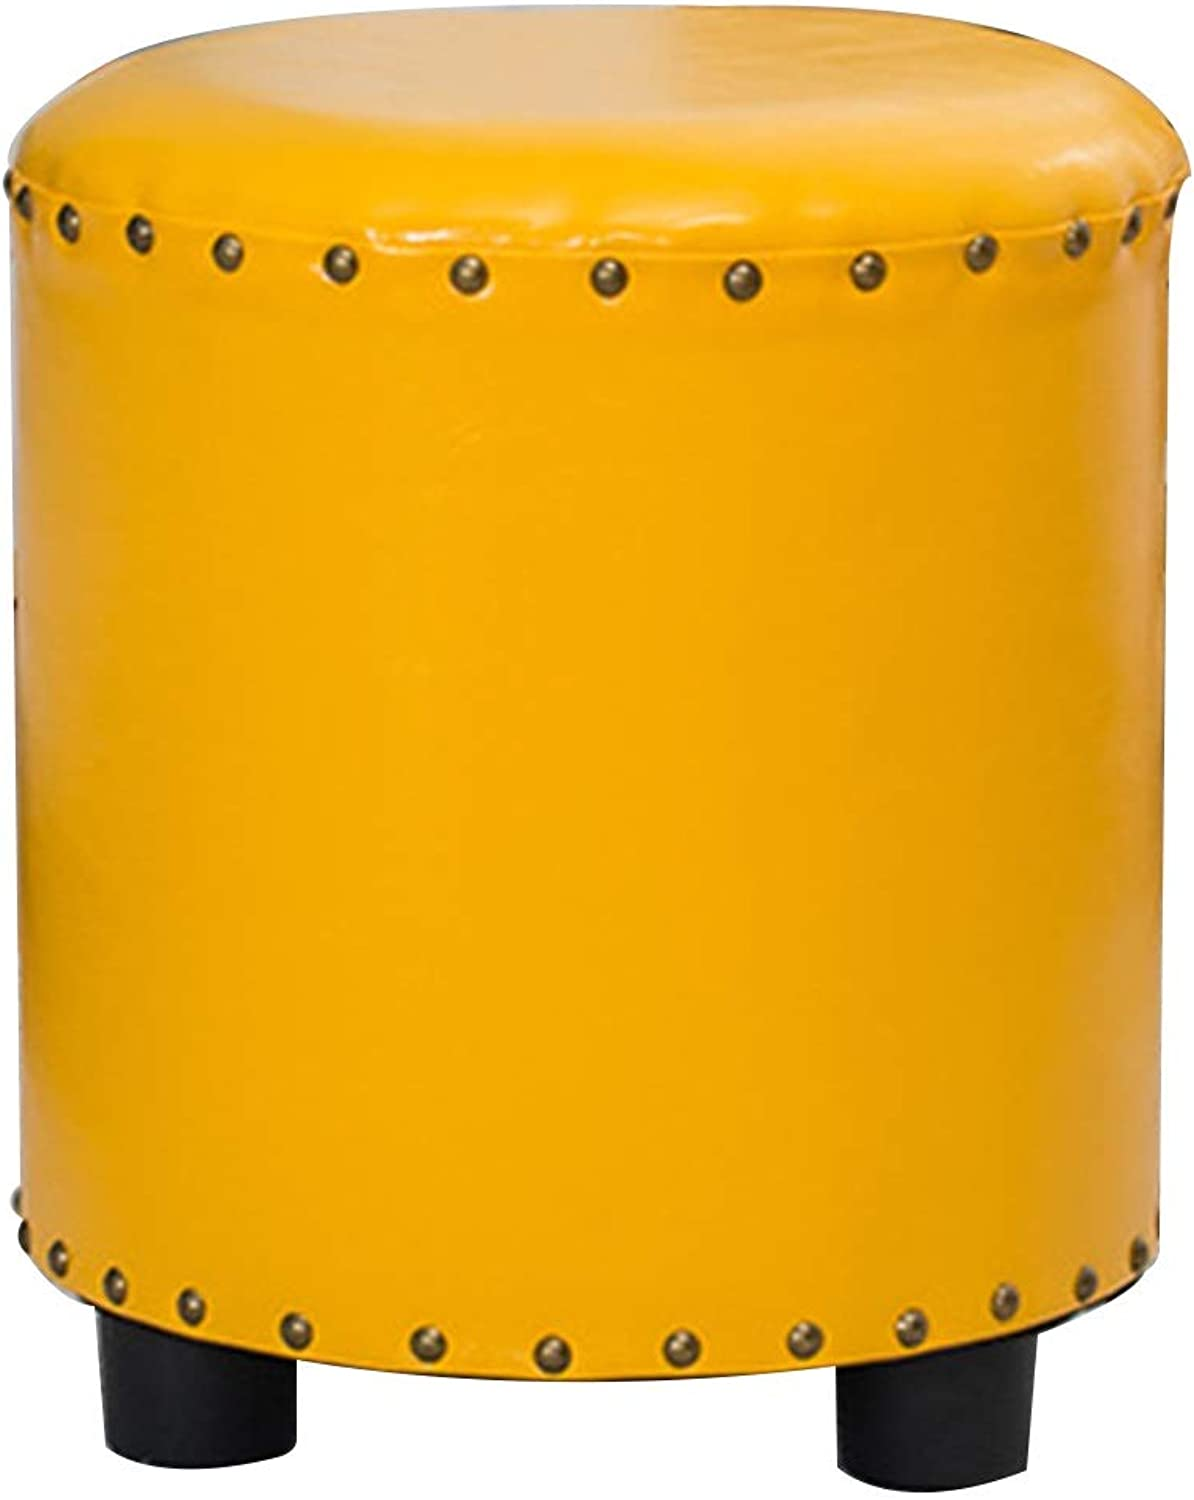 BYPING Pouffes And Footstools Bedroom Reminiscence Solid Wood PU Non-Slip Cotton Breathable, 4 colors (Capacity   34X40X40CM, color   Yellow)